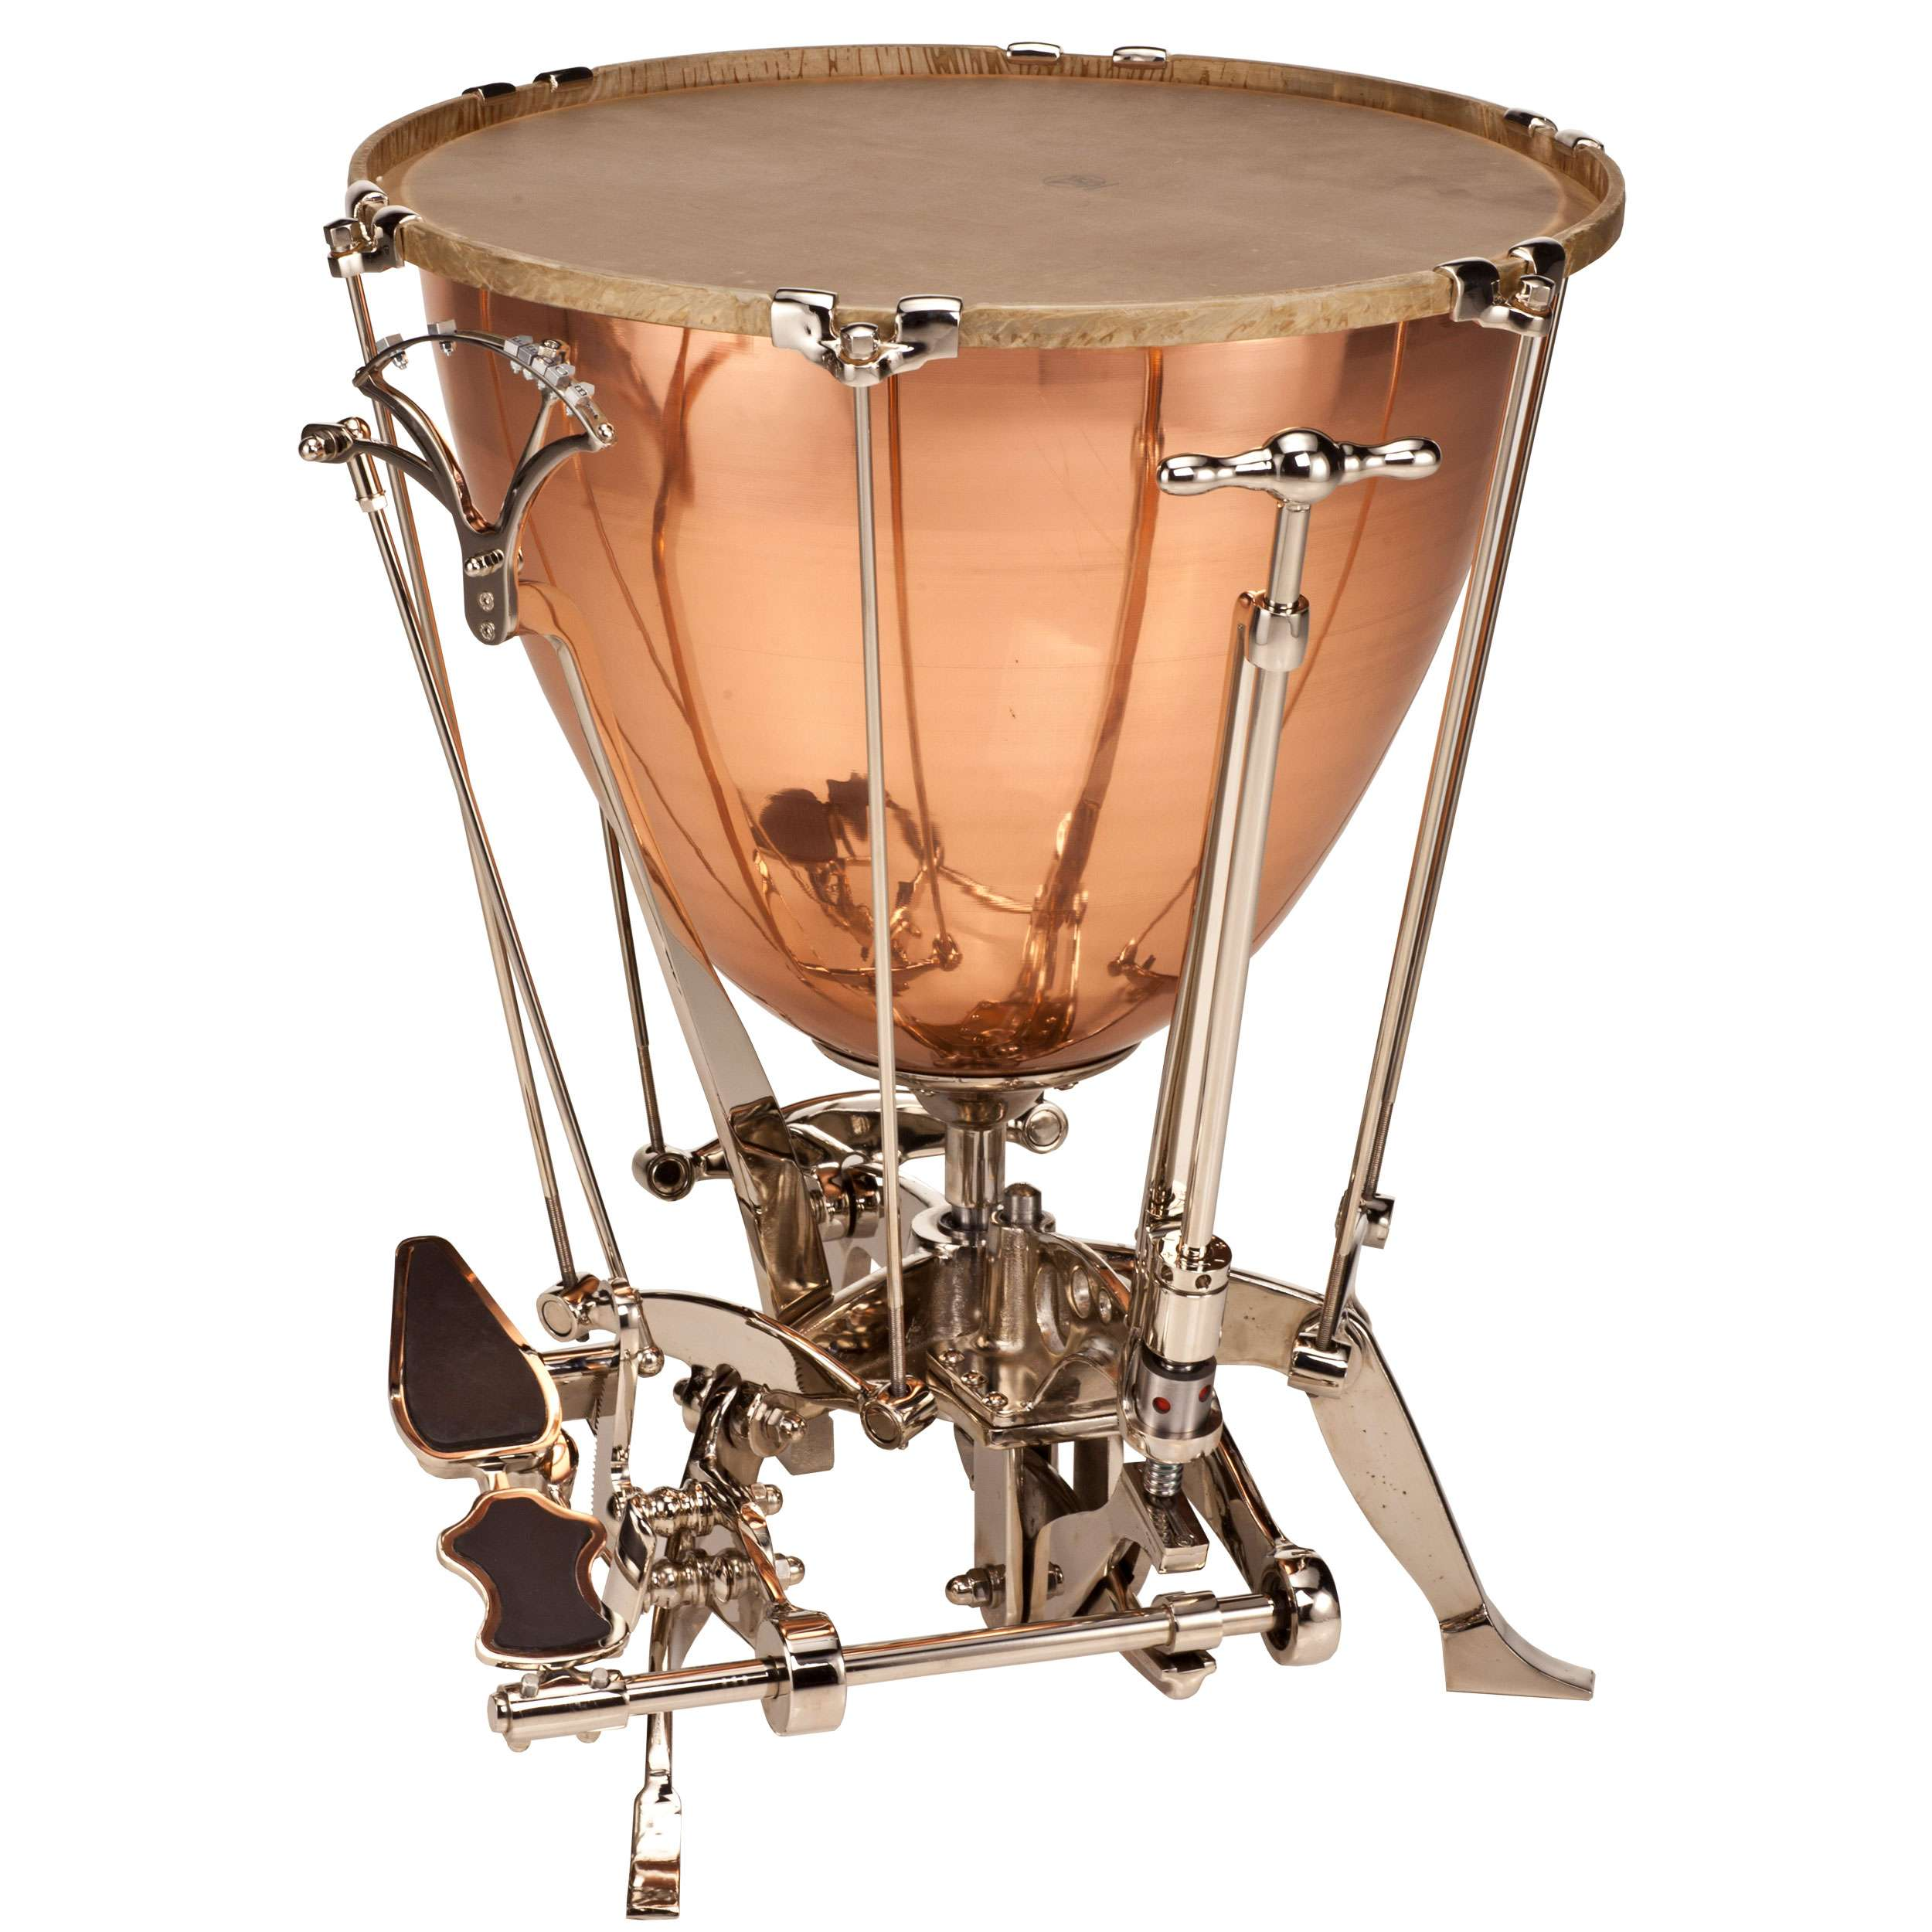 "Adams 29"" Schnellar Timpani with Kurbel (Crank) and Calfskin Head"